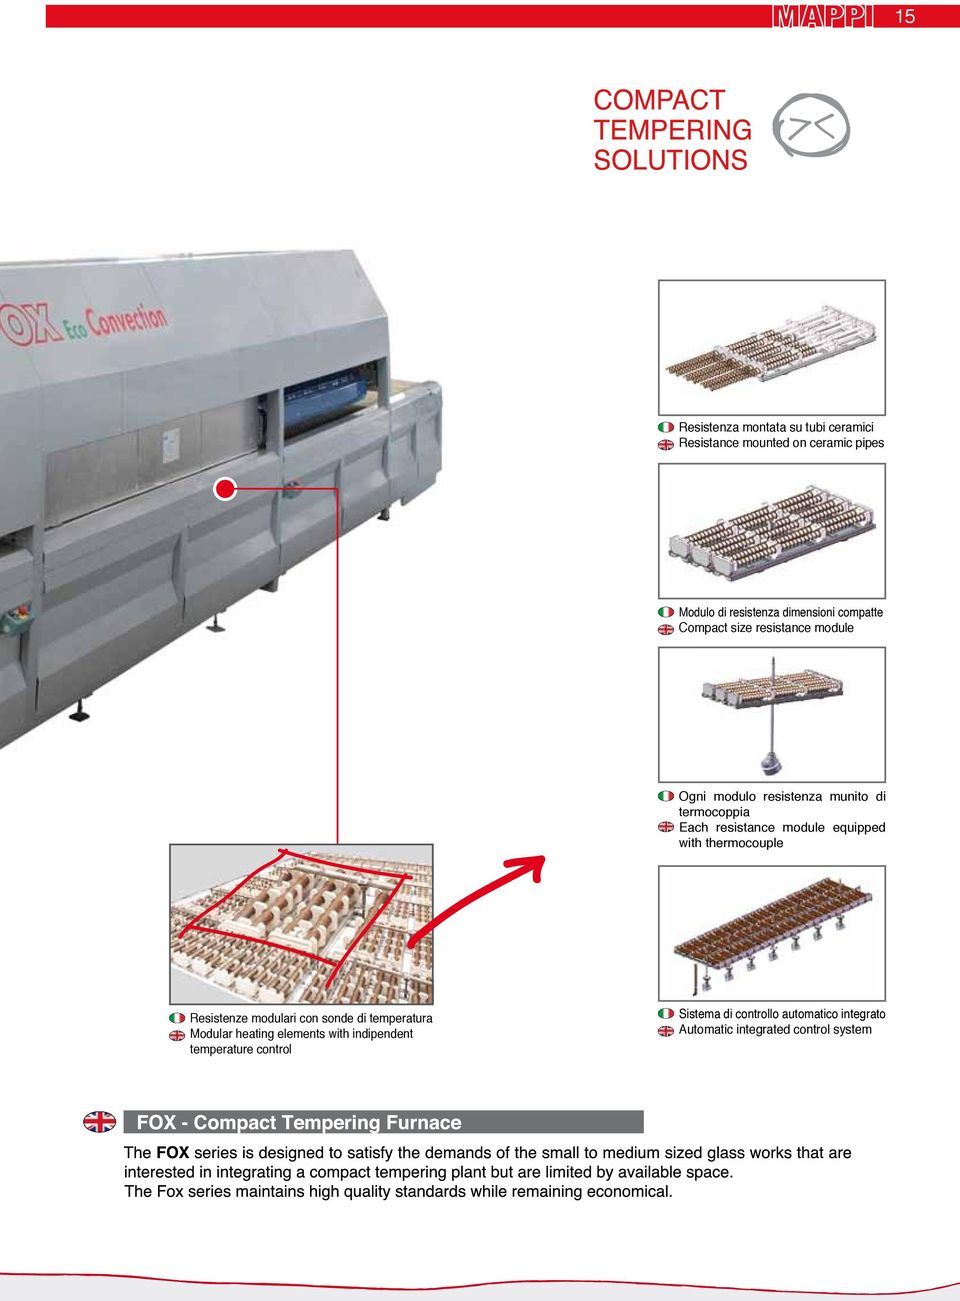 module equipped with thermocouple Resistenze modulari con sonde di temperatura Modular heating elements